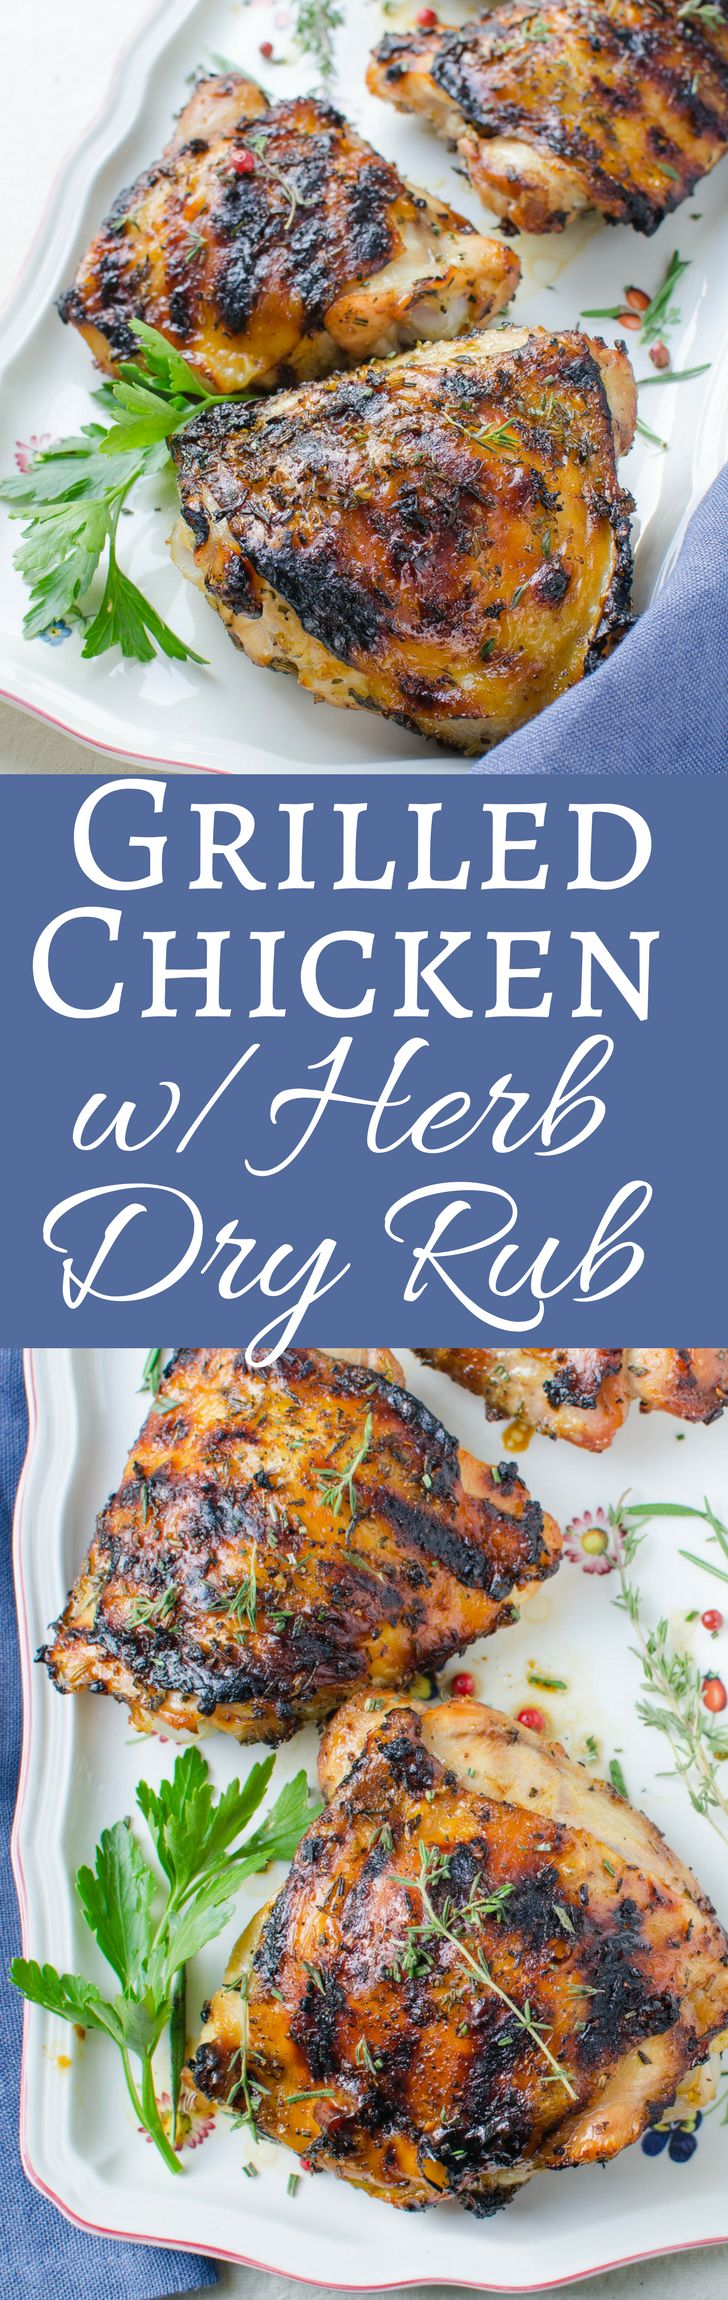 This is the best recipe for Grilled Chicken with Herb Dry-Rub. Fresh rosemary, garlic and thyme mixed with peppercorns, fennel seed & brown sugar! Delish!